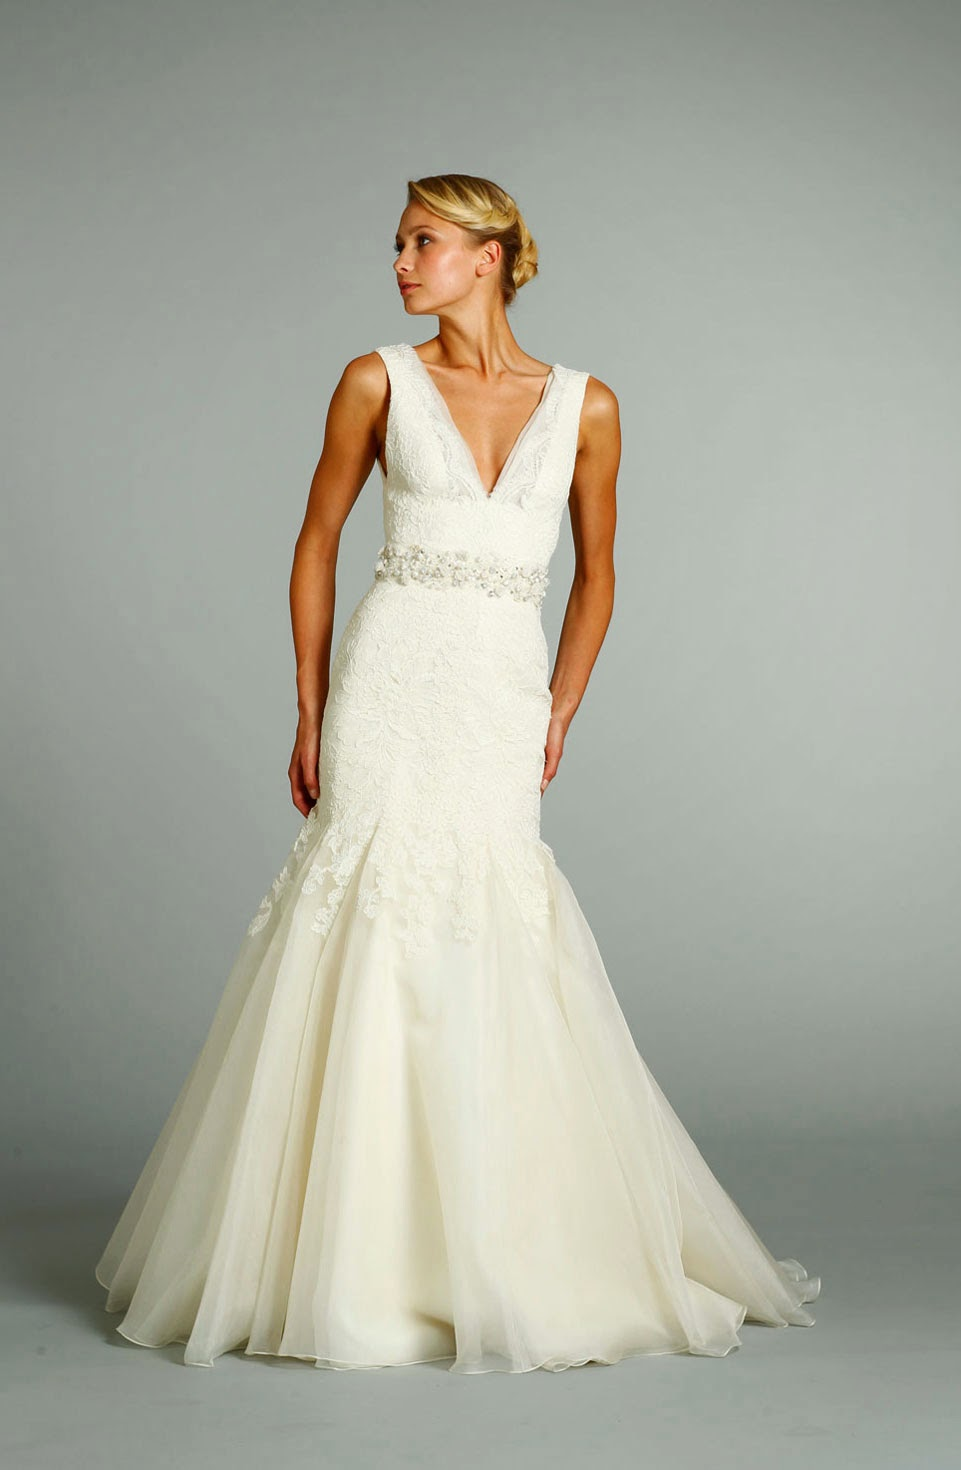 simple elegant wedding dresses cheap simple elegant wedding dress Simple Elegant Wedding Dresses Cheap 40